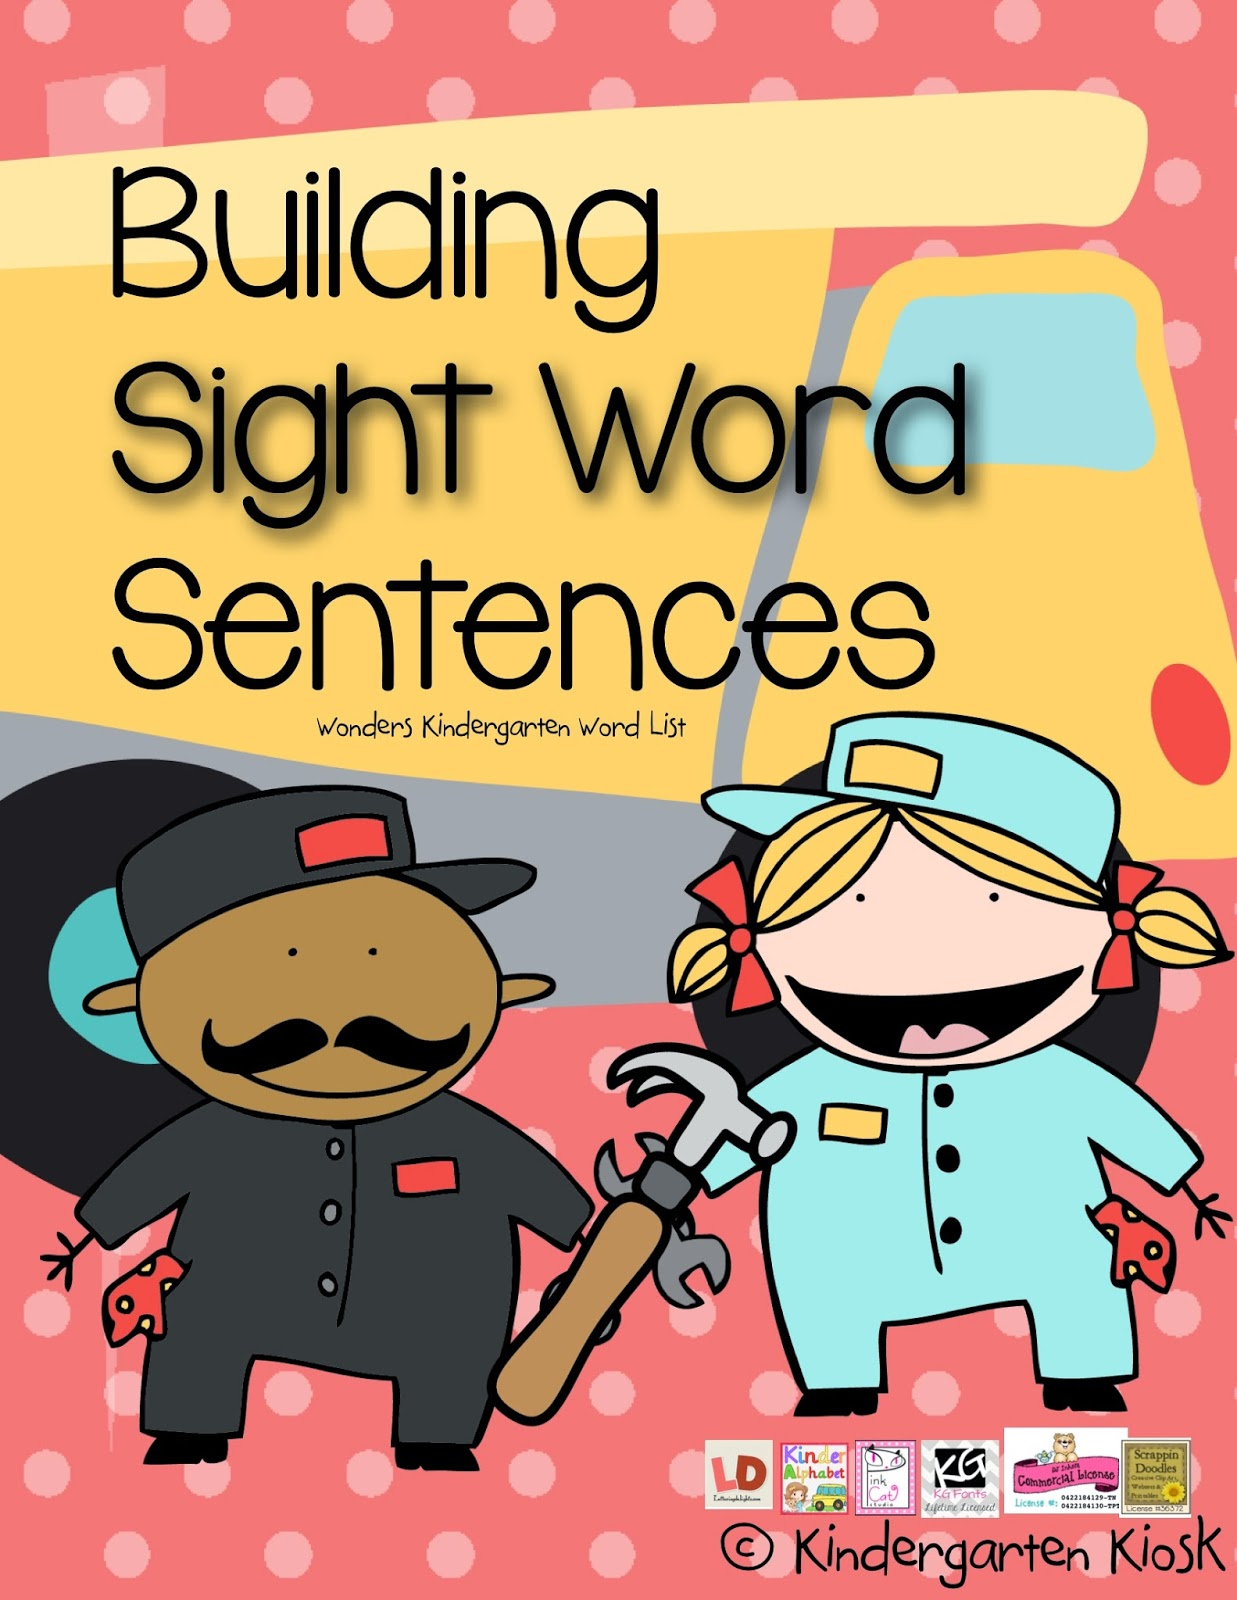 Kindergarten Kiosk Kindergarten Sight Word Worksheets